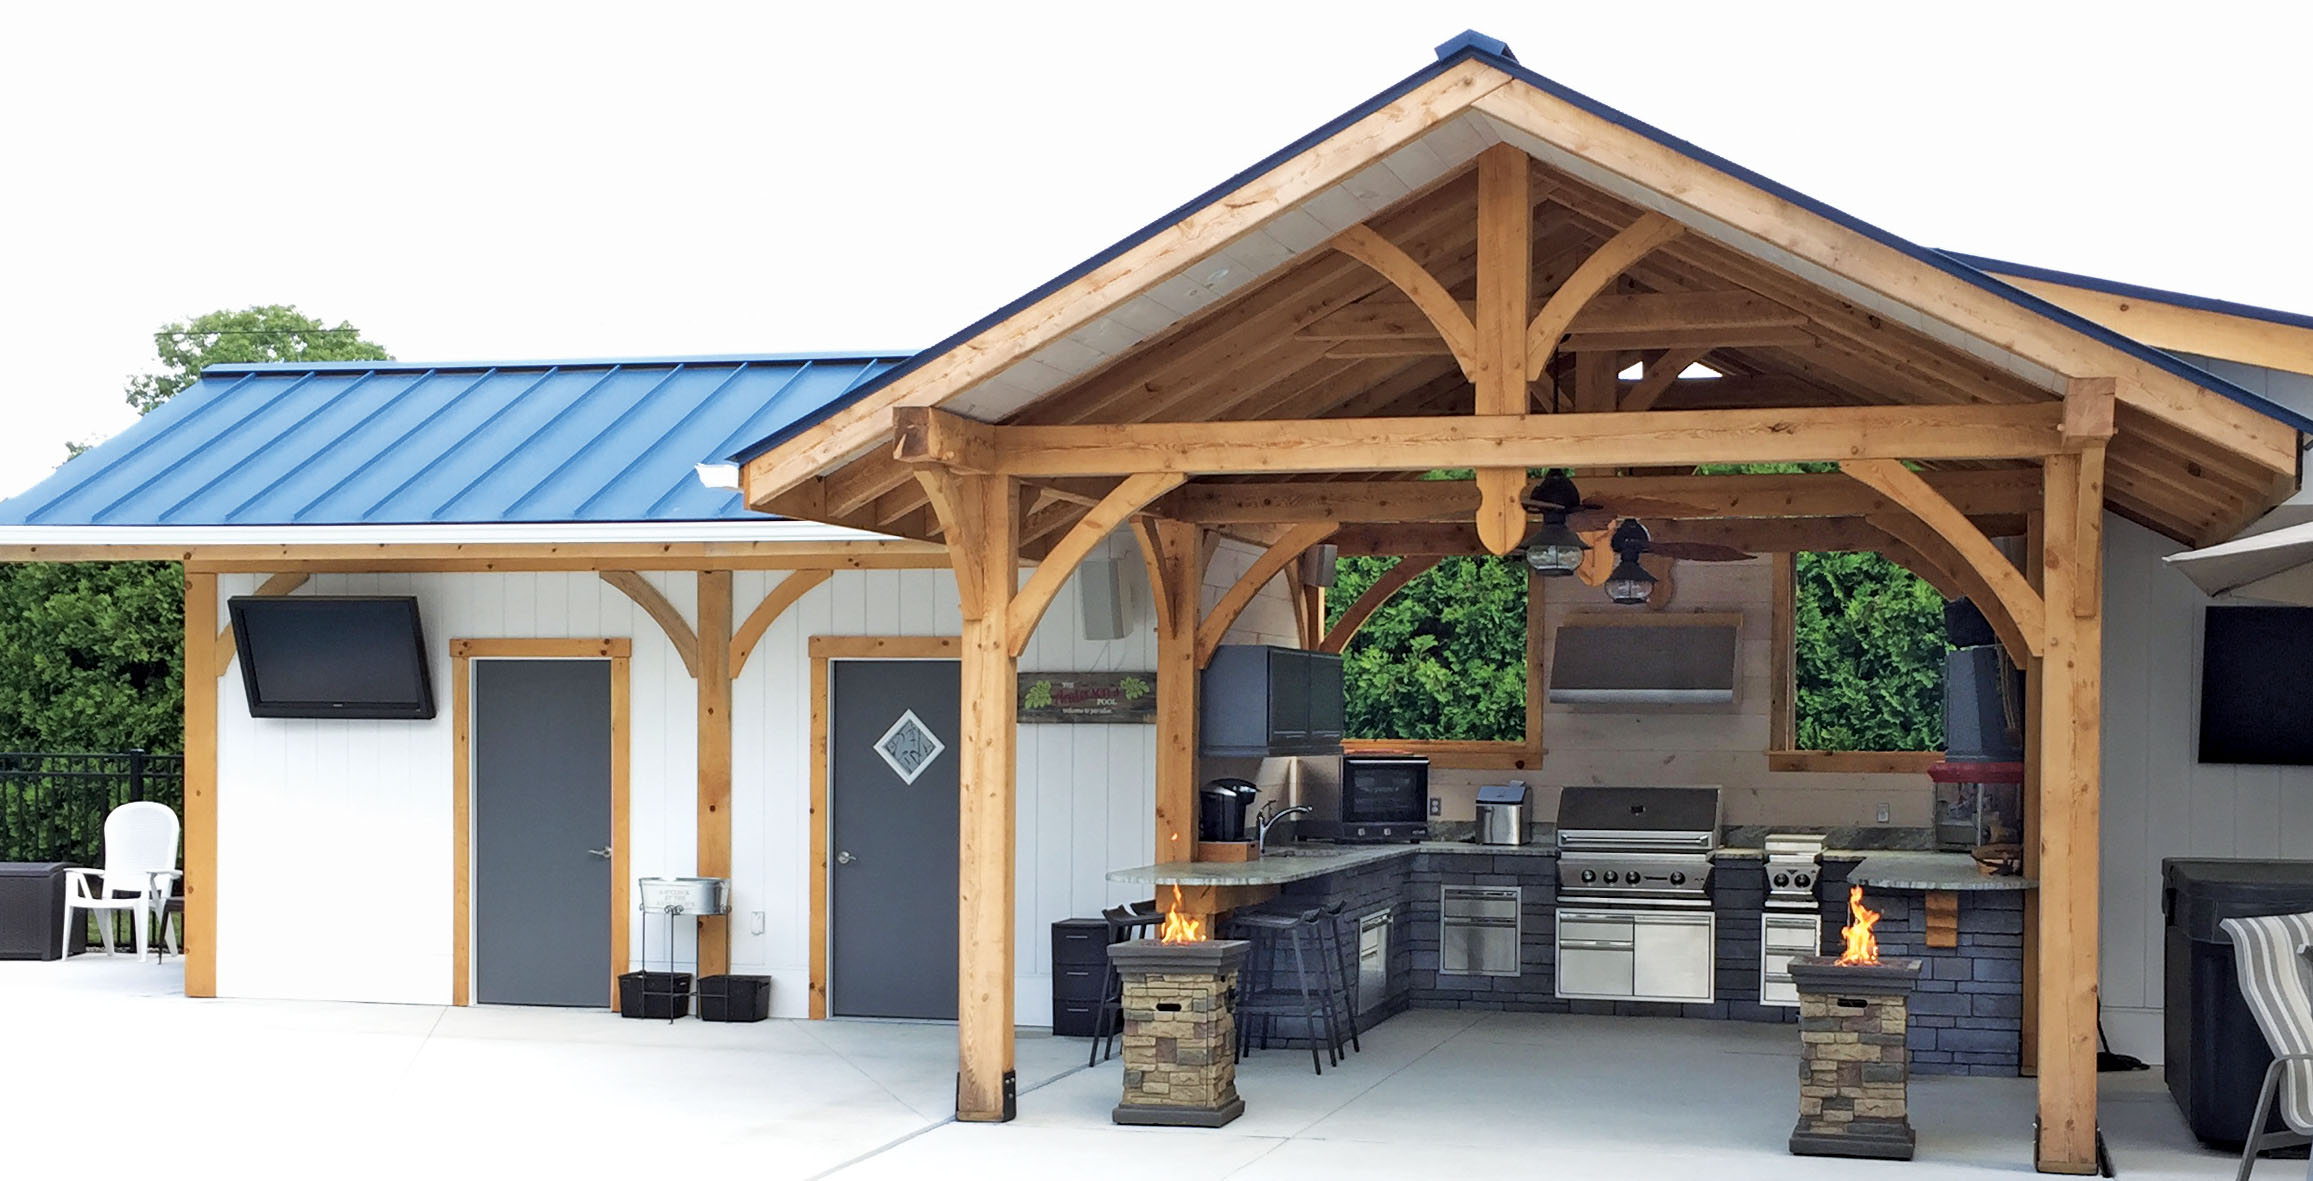 Timber Frame Outdoor Kitchen - Ware Built Timber Frames